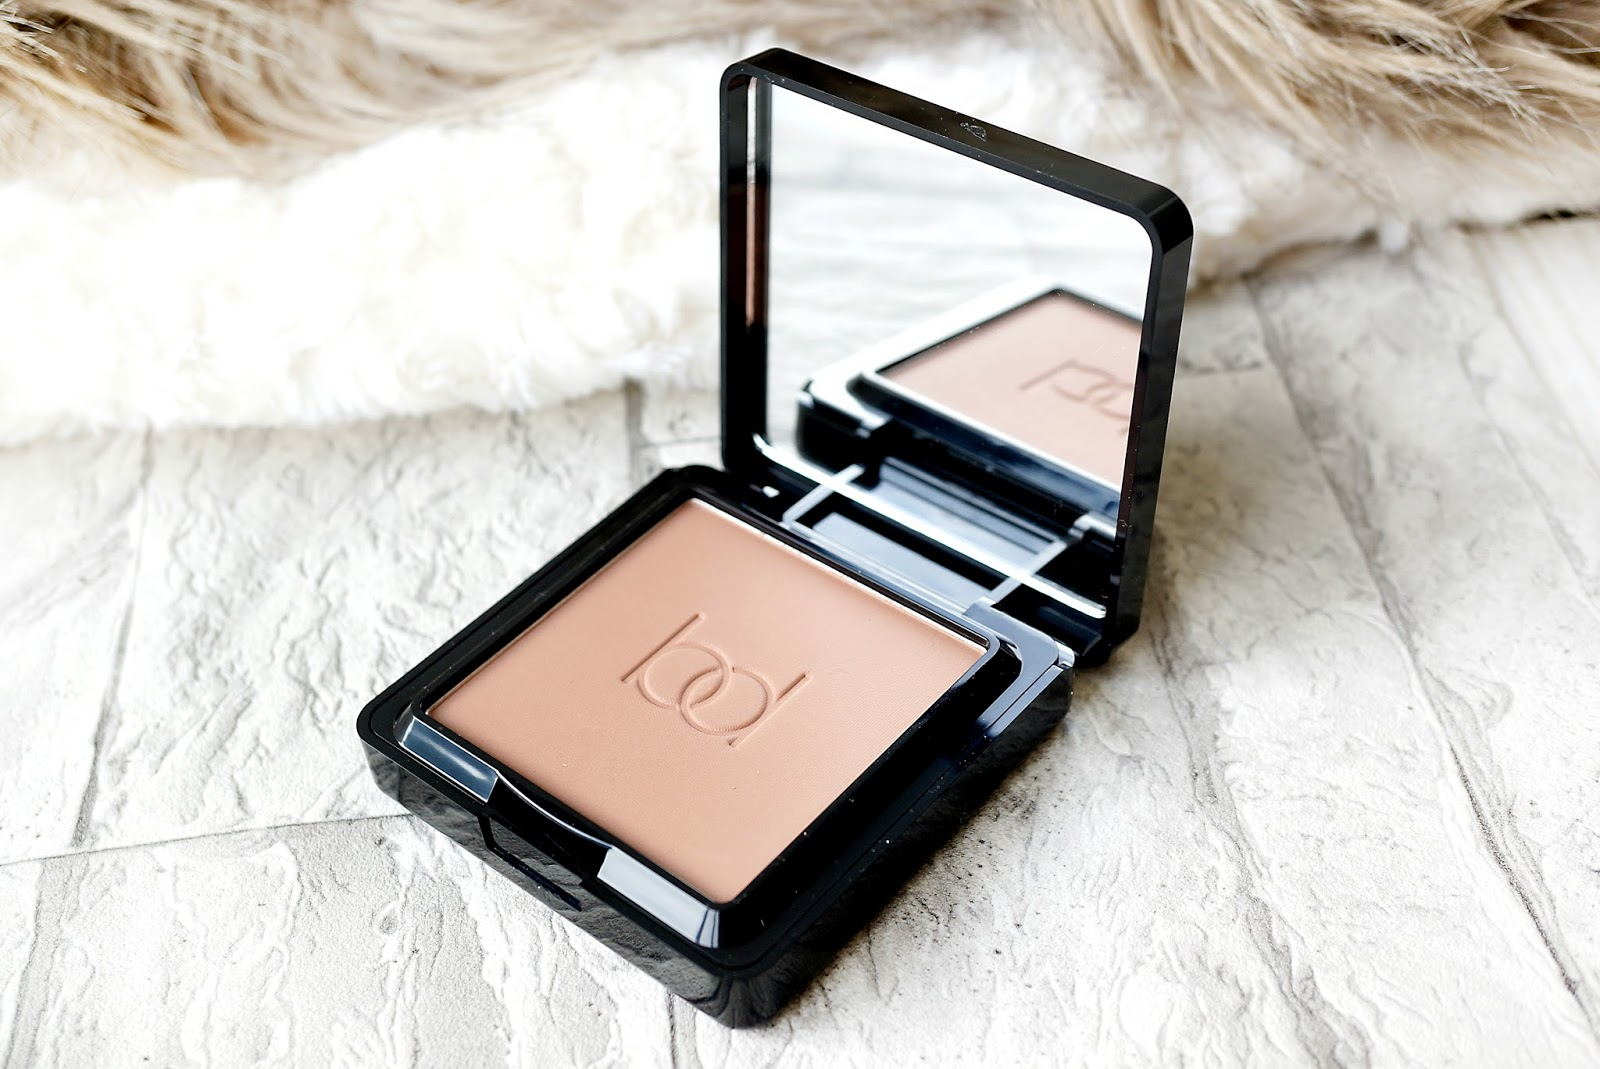 Barbara Daly Velvet Touch Bronzer | A New Contouring